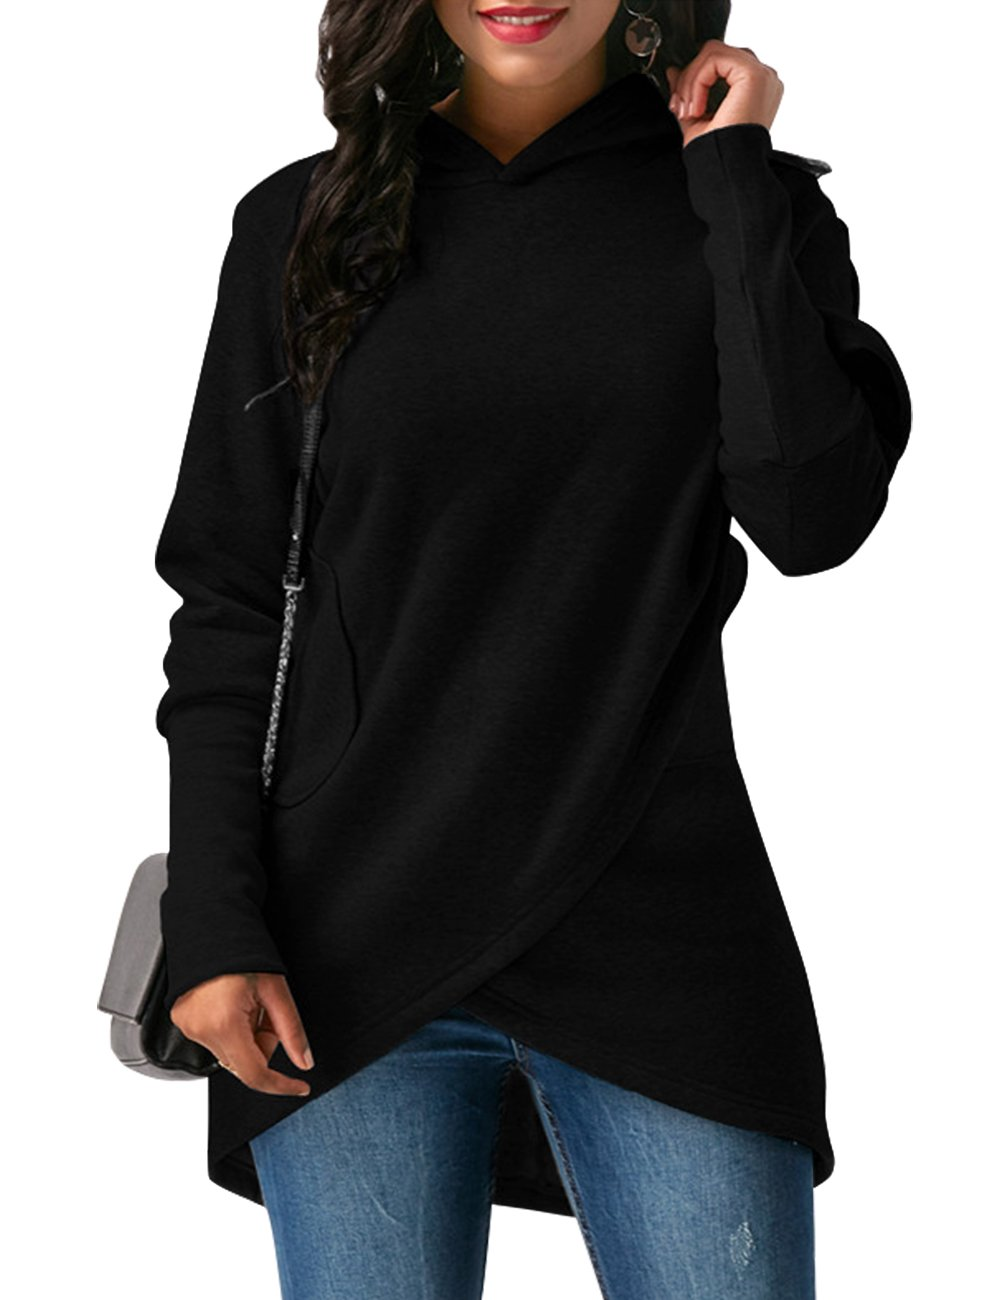 WAJAT Casual Hoodie For Women, Women's Short Overall Asymmetric Hem Solid Color Christmas Coat Black Small